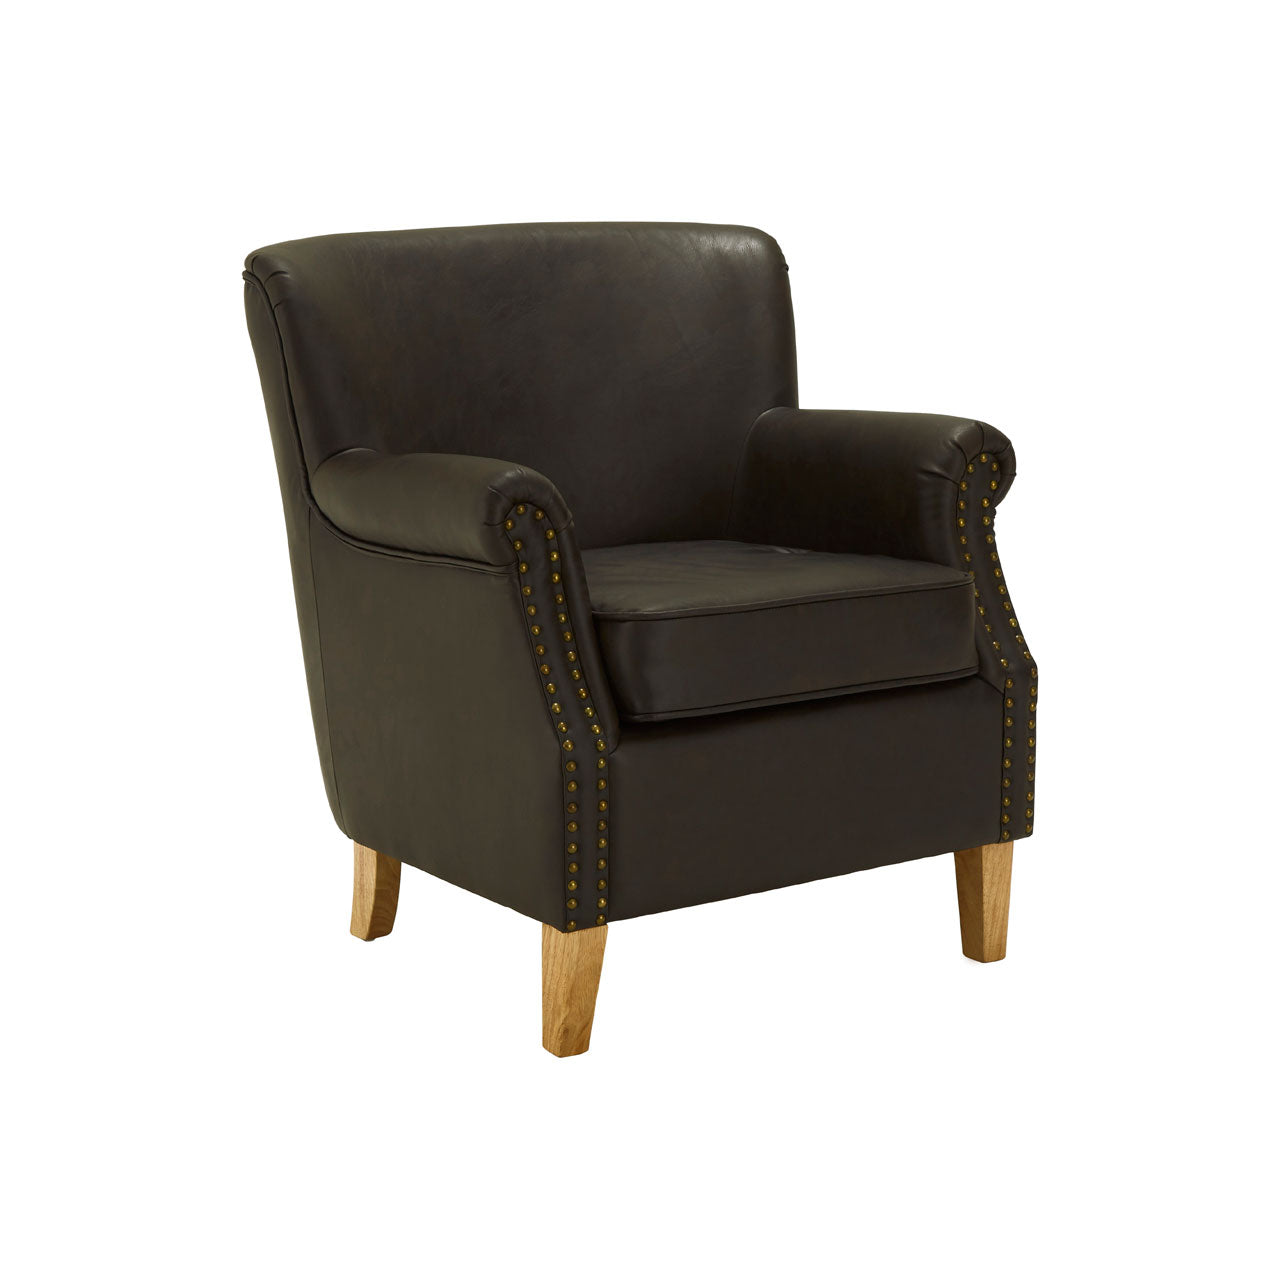 Trinity Armchair in Brown Leather